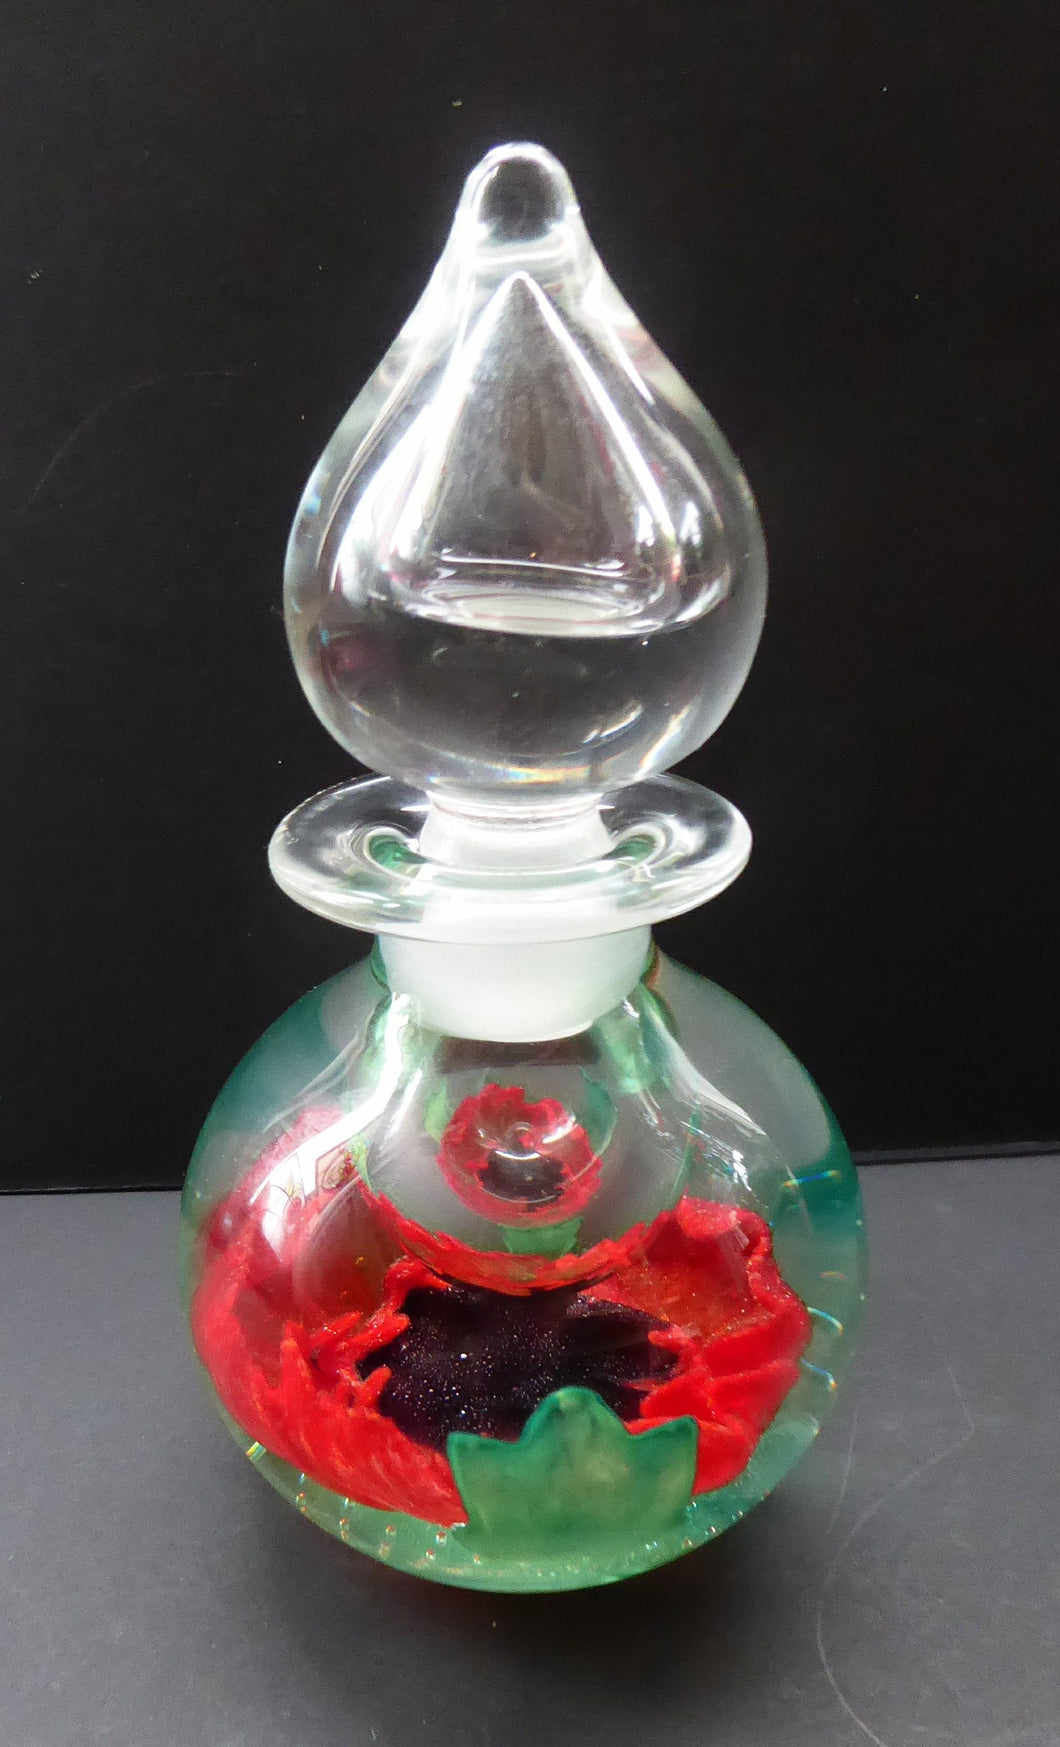 SCOTTISH GLASS. Vintage Caithness Glass Bulbous Perfume Bottle POPPY Design. Sultry Evening. Limited Edition